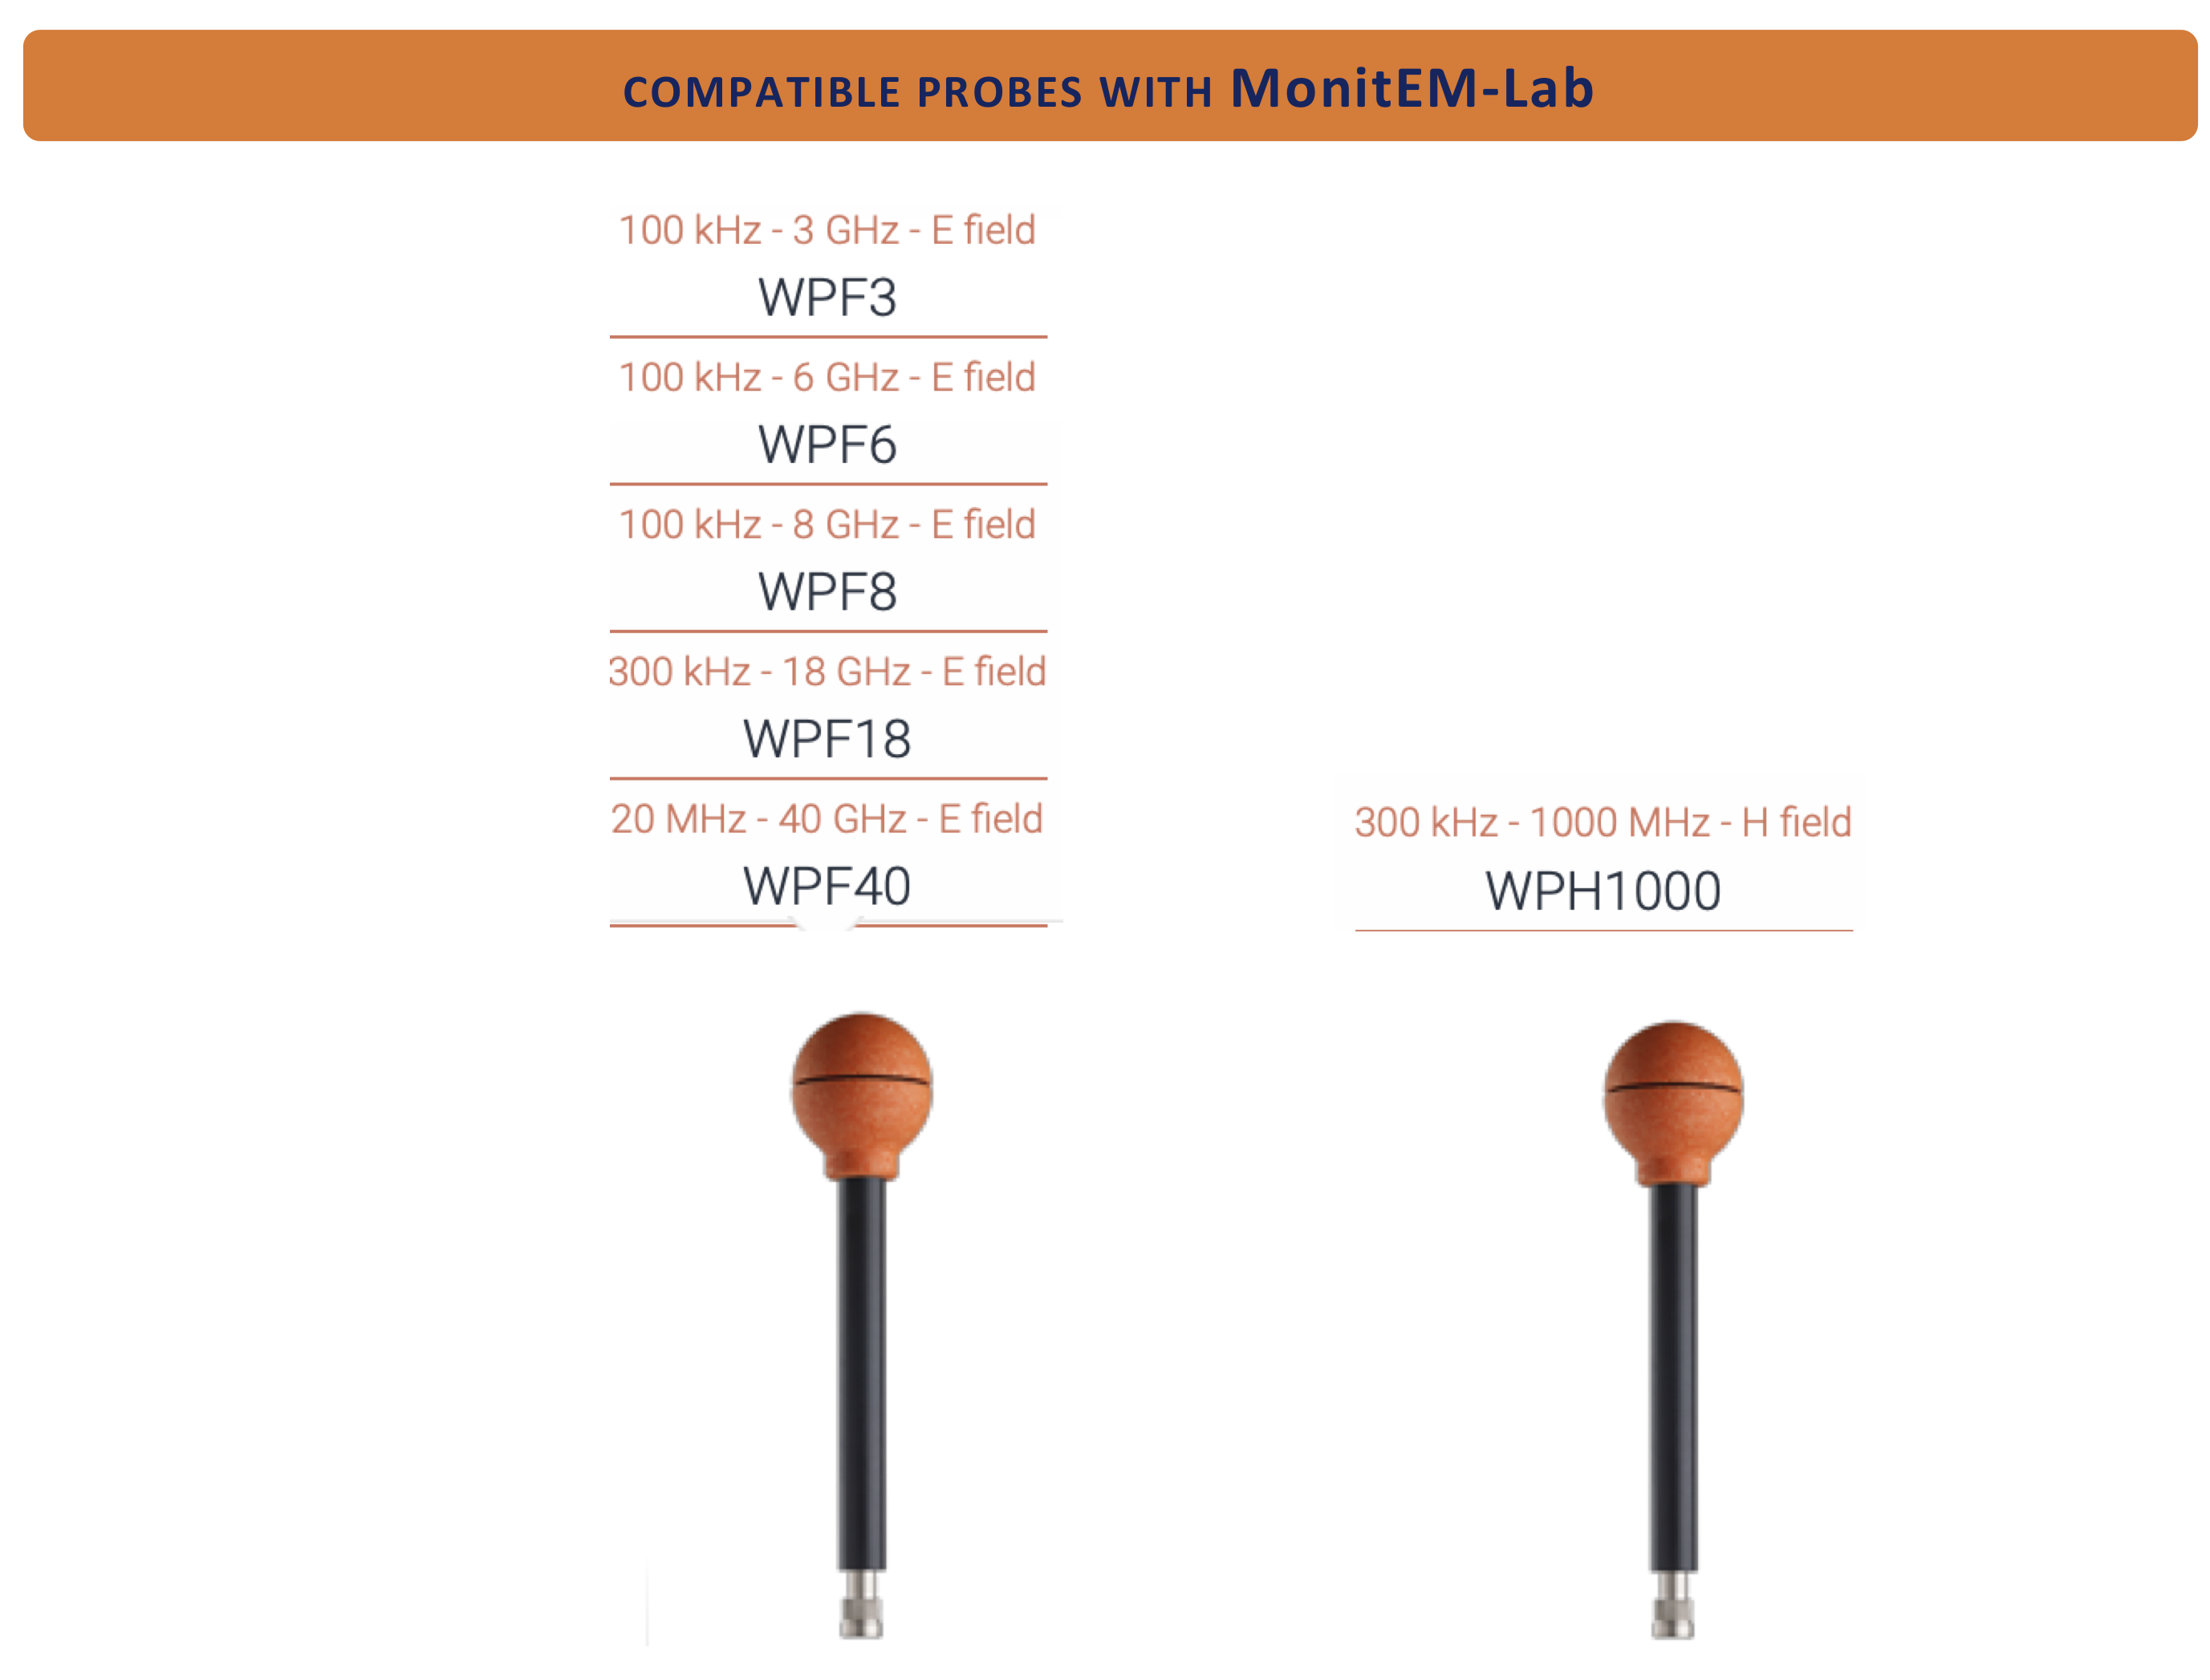 Compatible probes with MonitEM-Lab